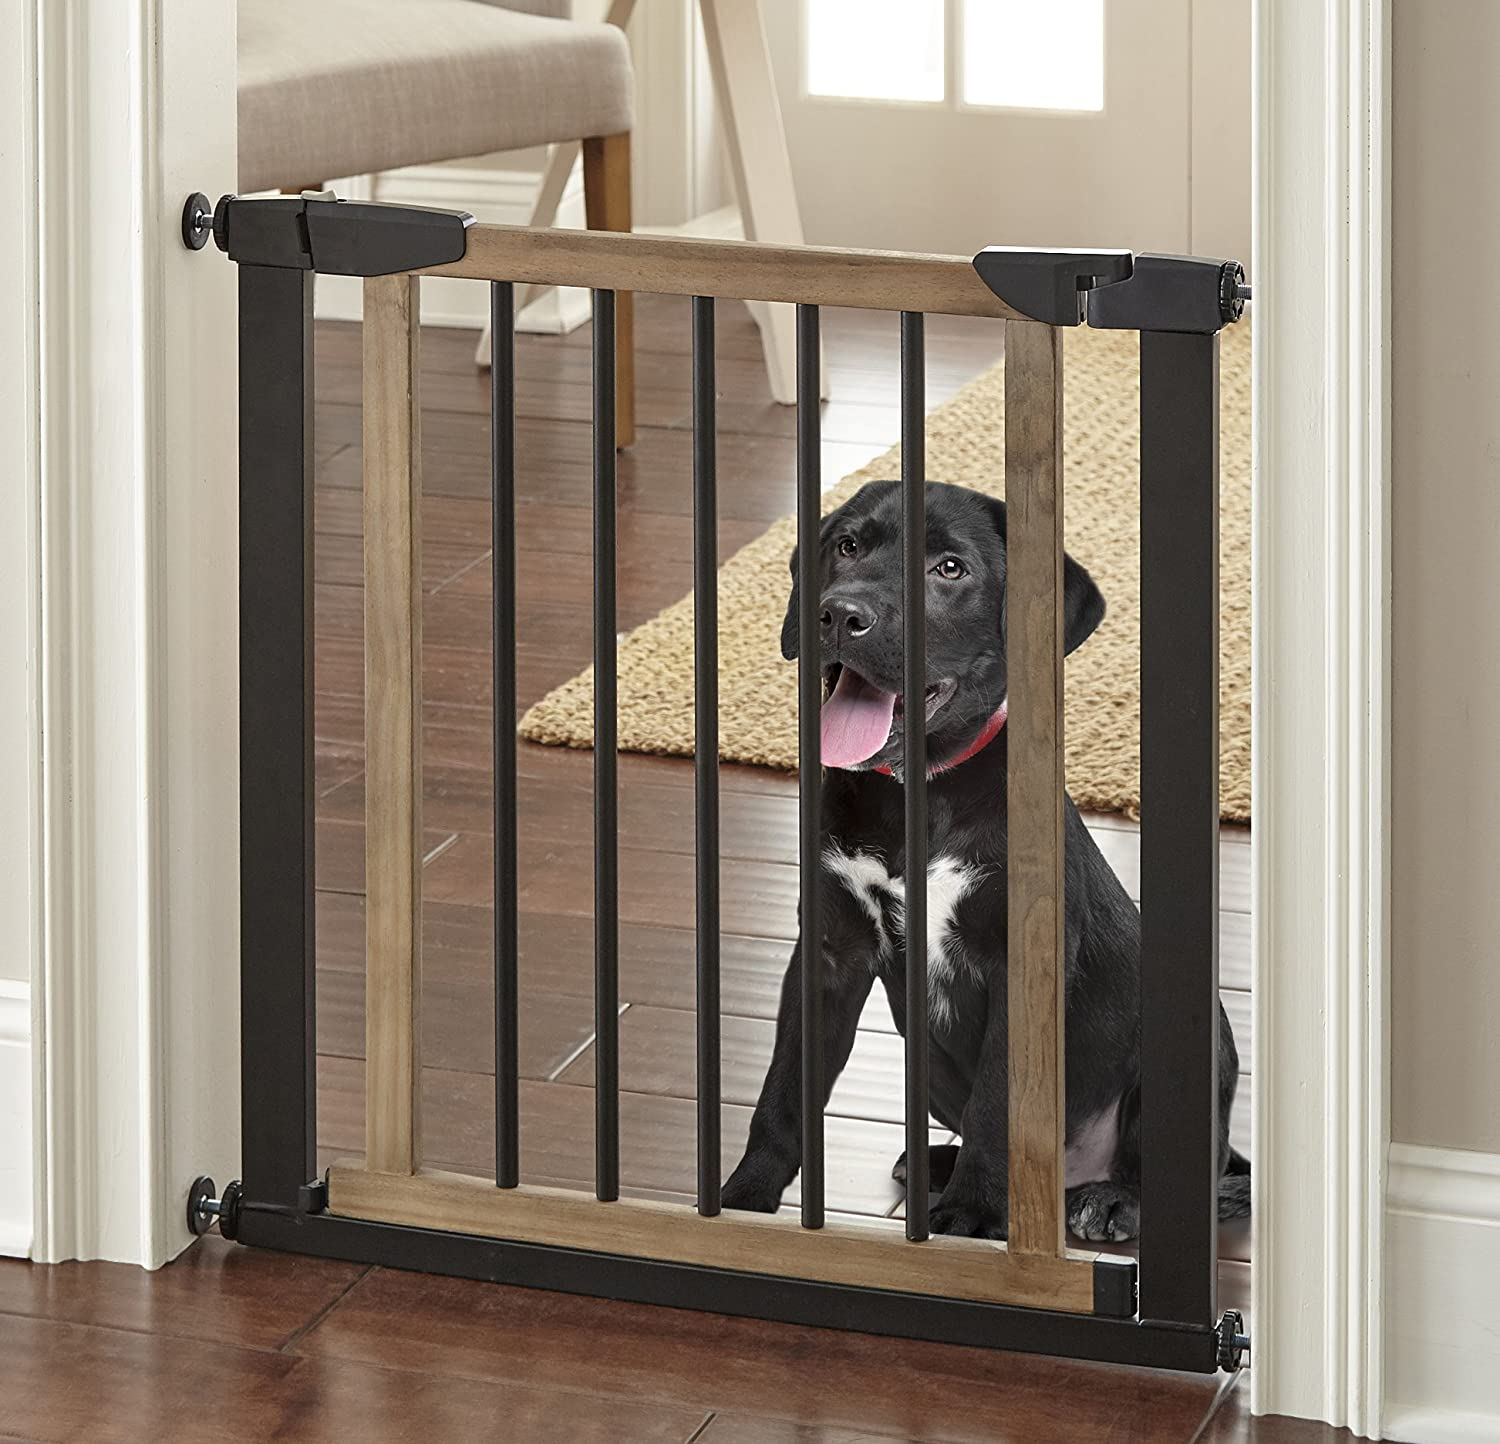 Logan Dog Gate – Indoor Pet Barrier, Expandable to 40 , Walk Through Swinging Door, Extra Wide, Pressure Mounted, Walls, Stairs. Small and Large Dogs. Wood, Metal. Best Dog Gate. NMN Designs